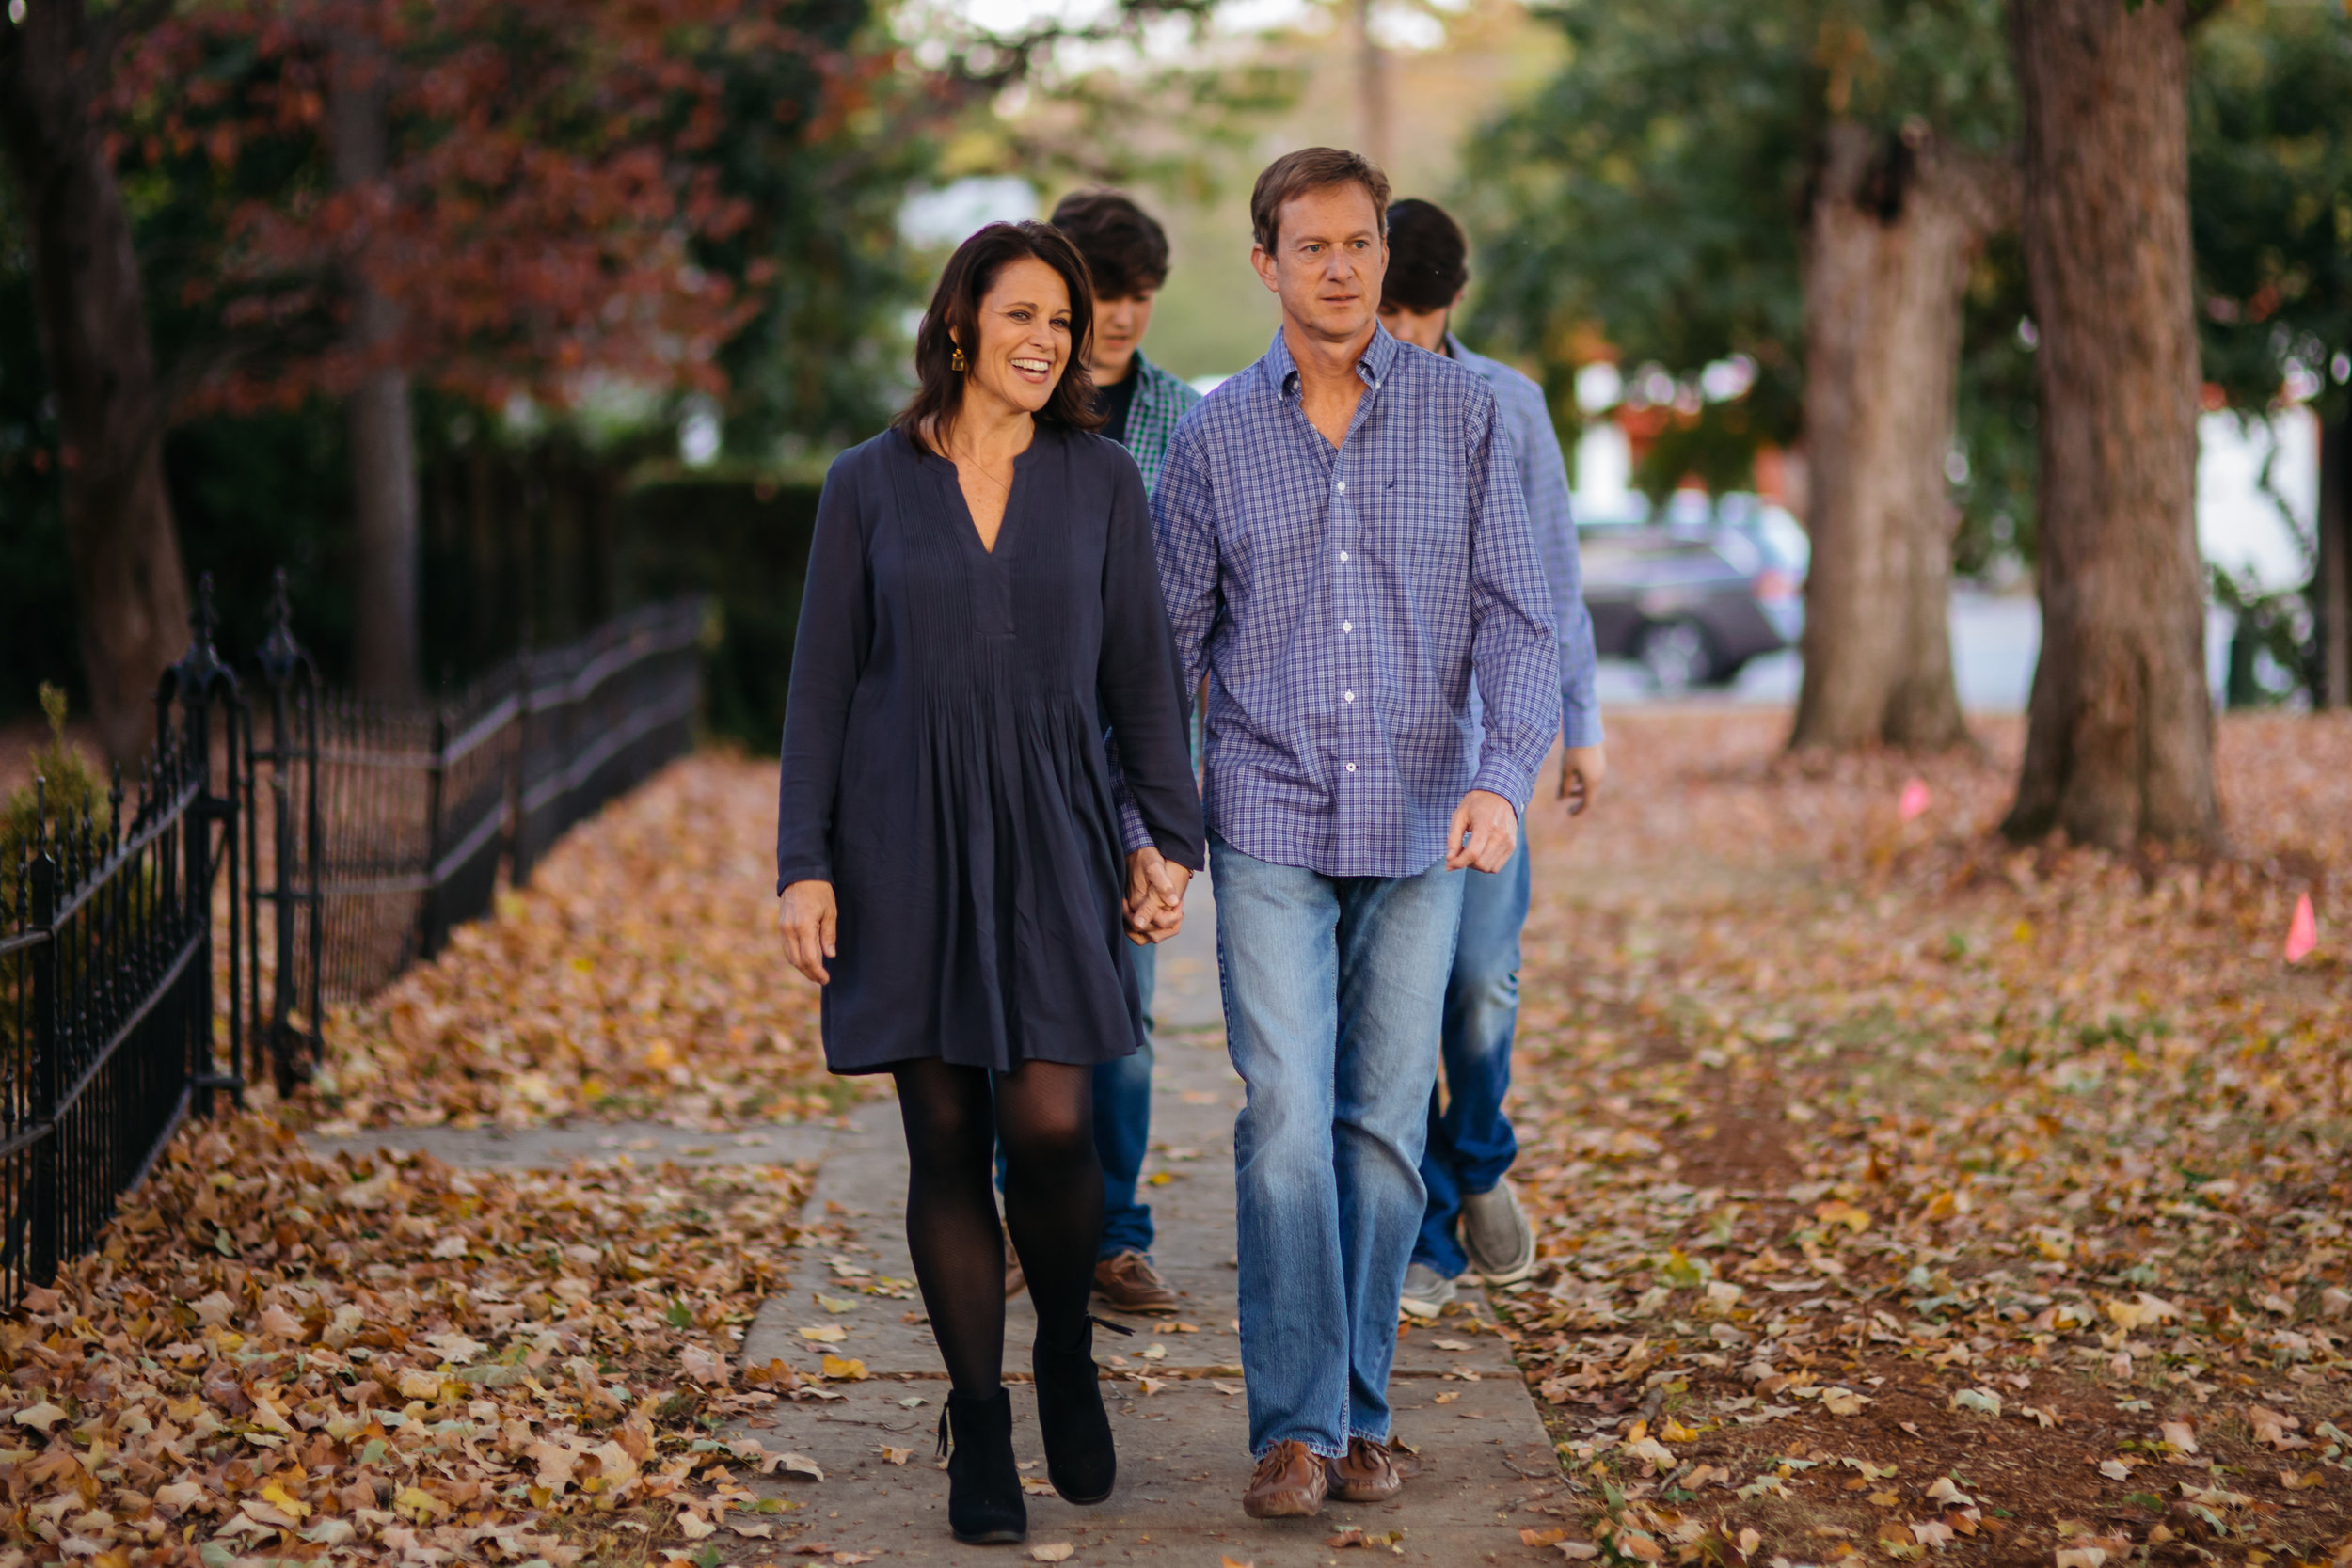 fall-family-photo-session-madison-huntsville-alabama-mary-colleen-photography-111